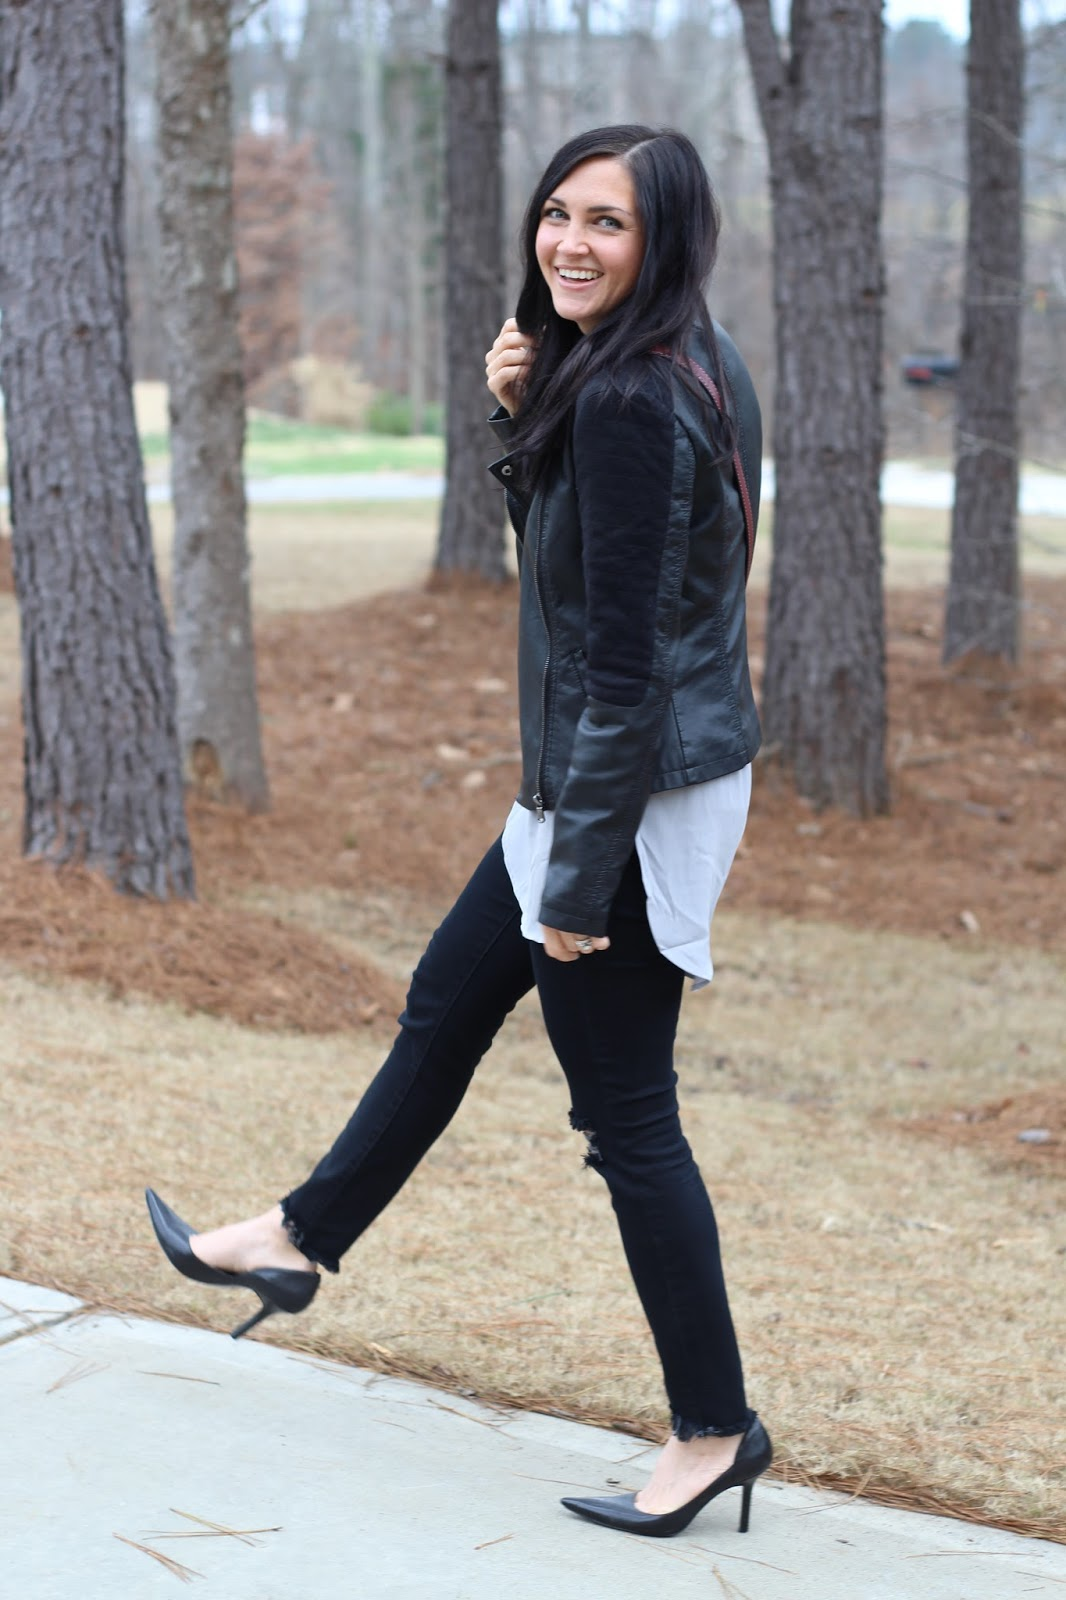 Leather Jacket and Distressed Denim worn with Stilettos